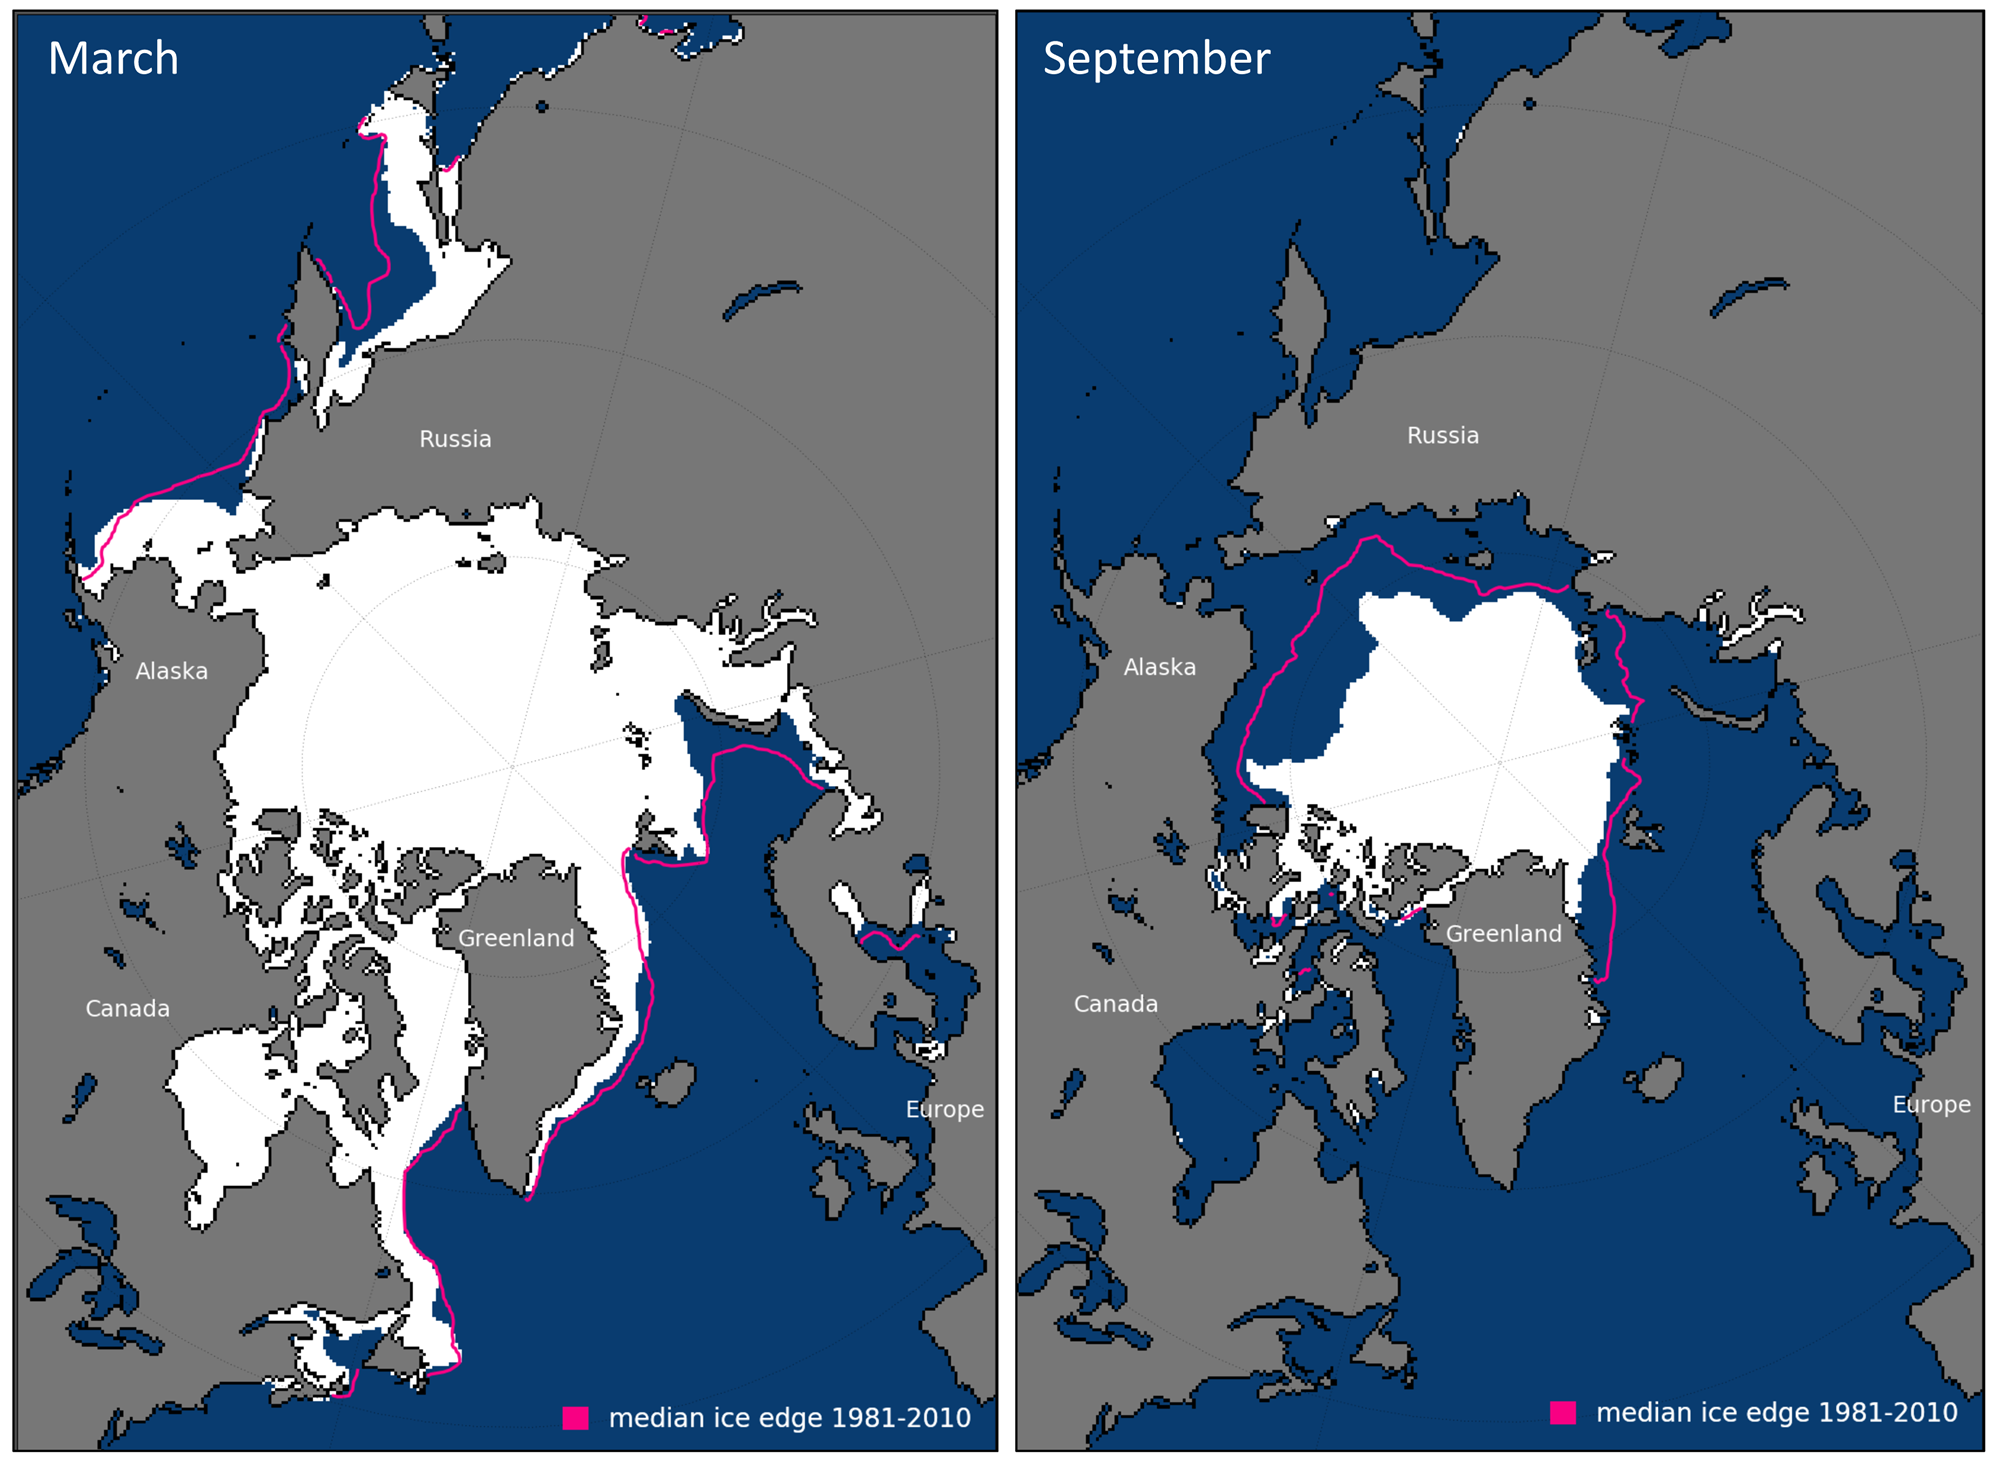 Sea Ice Map Of Arctic Ice on map of canyon, map of gold, map of climate change, map of antarctica, map of caribbean, map of yellow, map of earth, map of copper, map of mojave, map of sahara, map of night sky, map of burgundy, map of mediterranean,